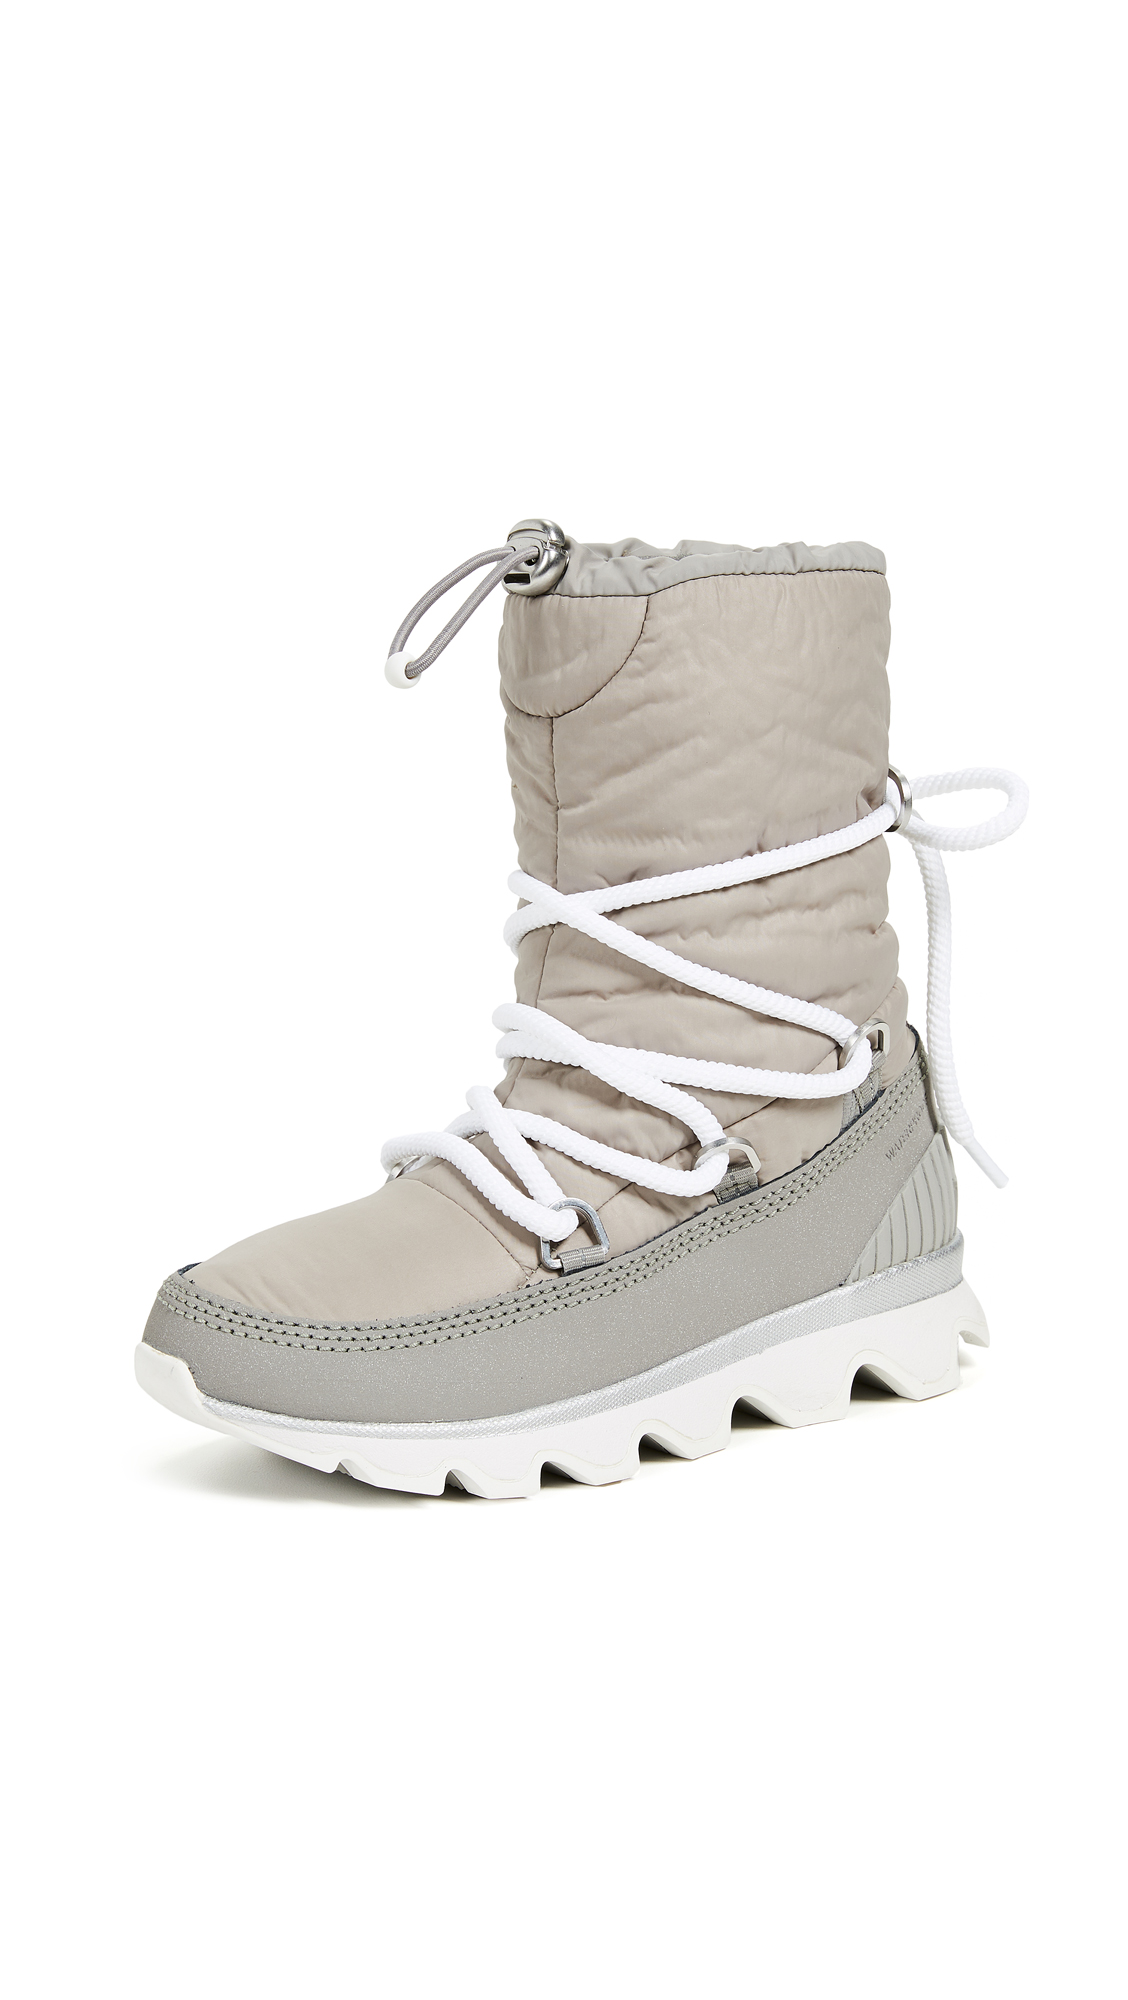 Sorel Kinetic Boots - Glitter/Chrome Grey/White